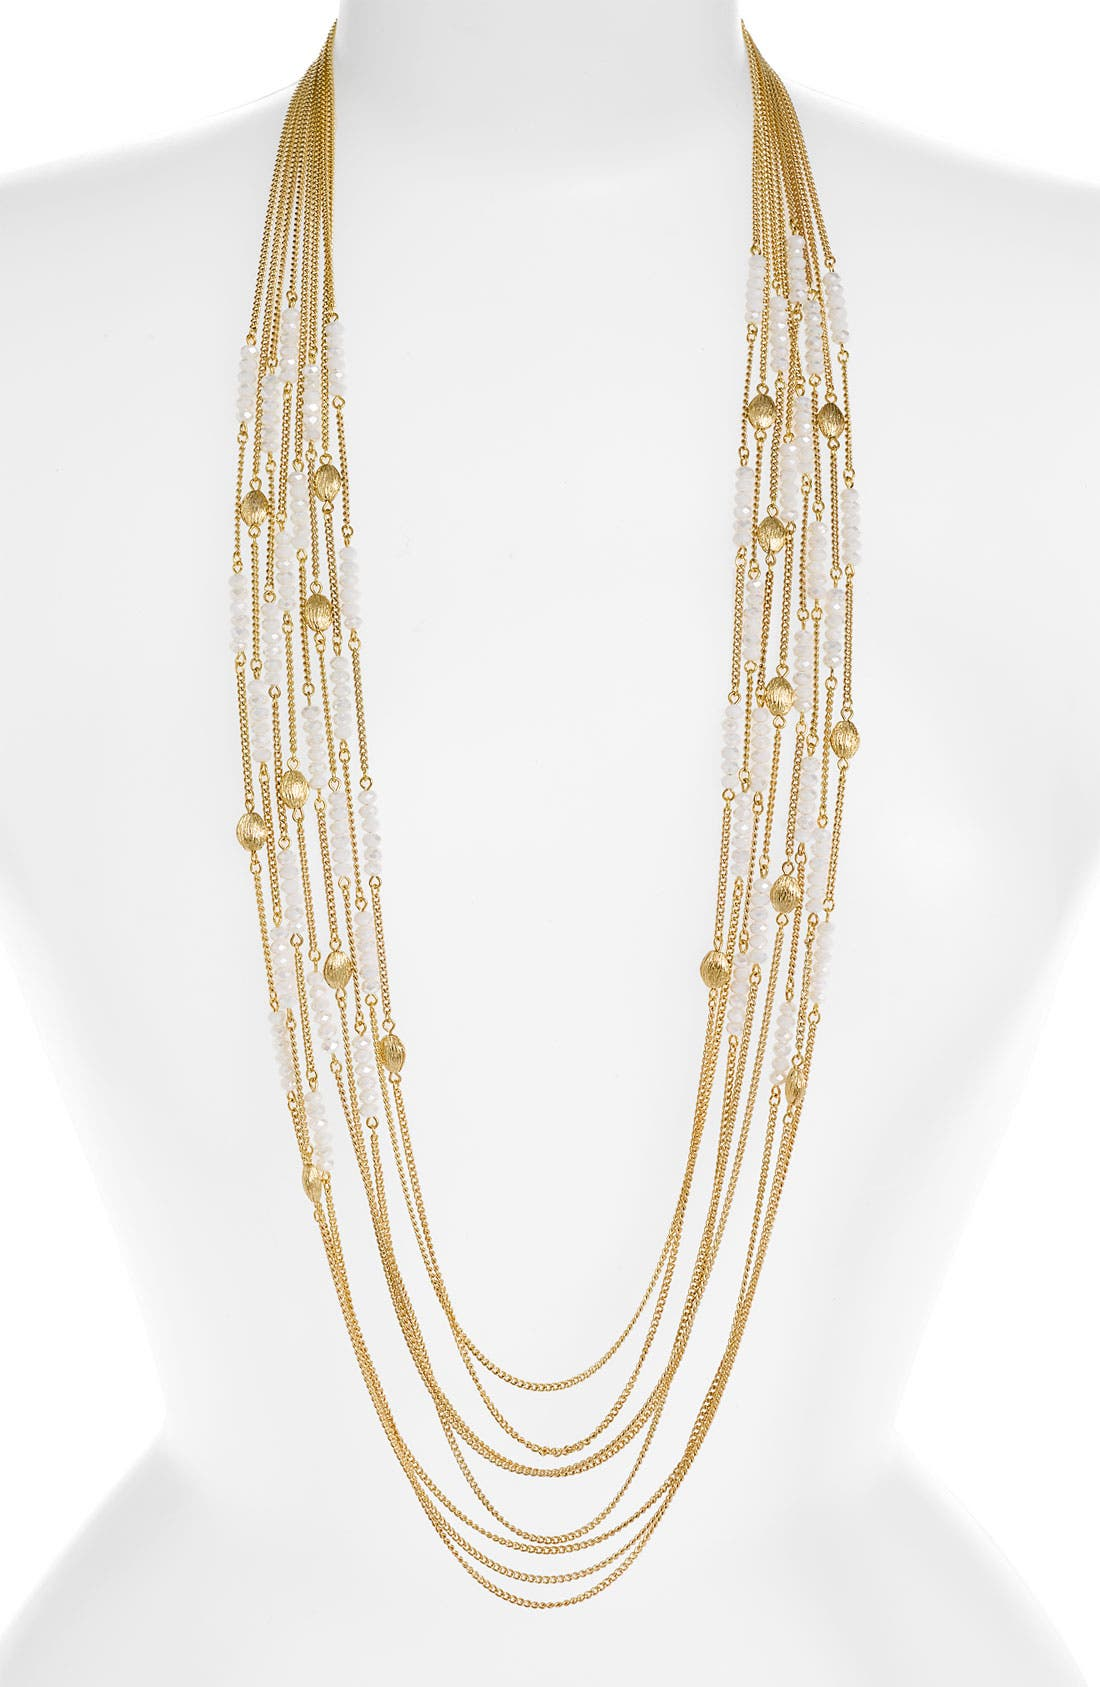 NORDSTROM, Multi Row Bead Necklace, Main thumbnail 1, color, 100